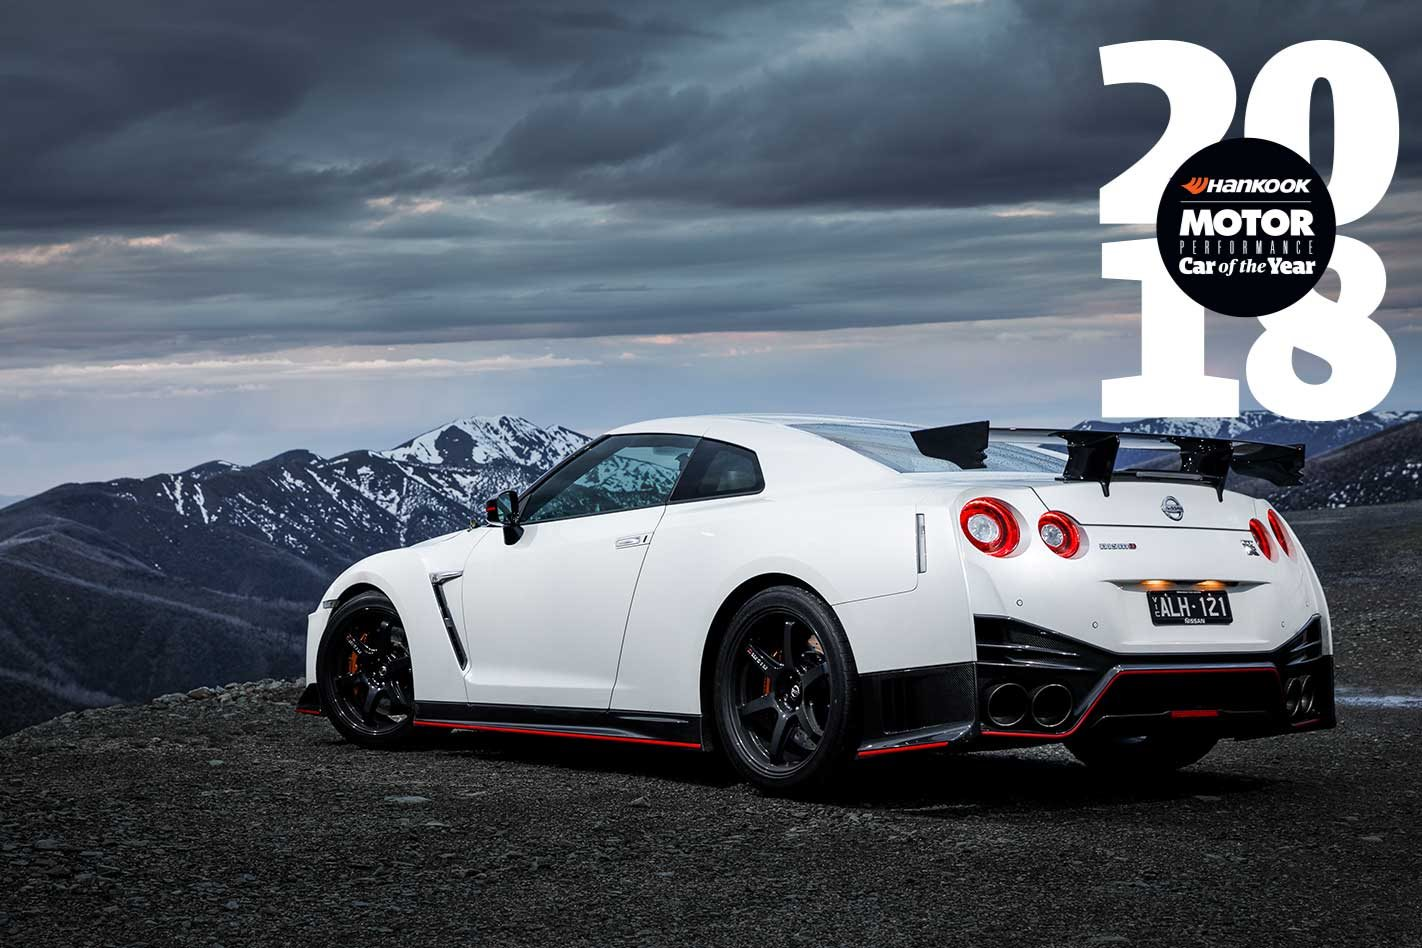 Nissan Gt R Nismo Performance Car Of The Year 2018 4th Place